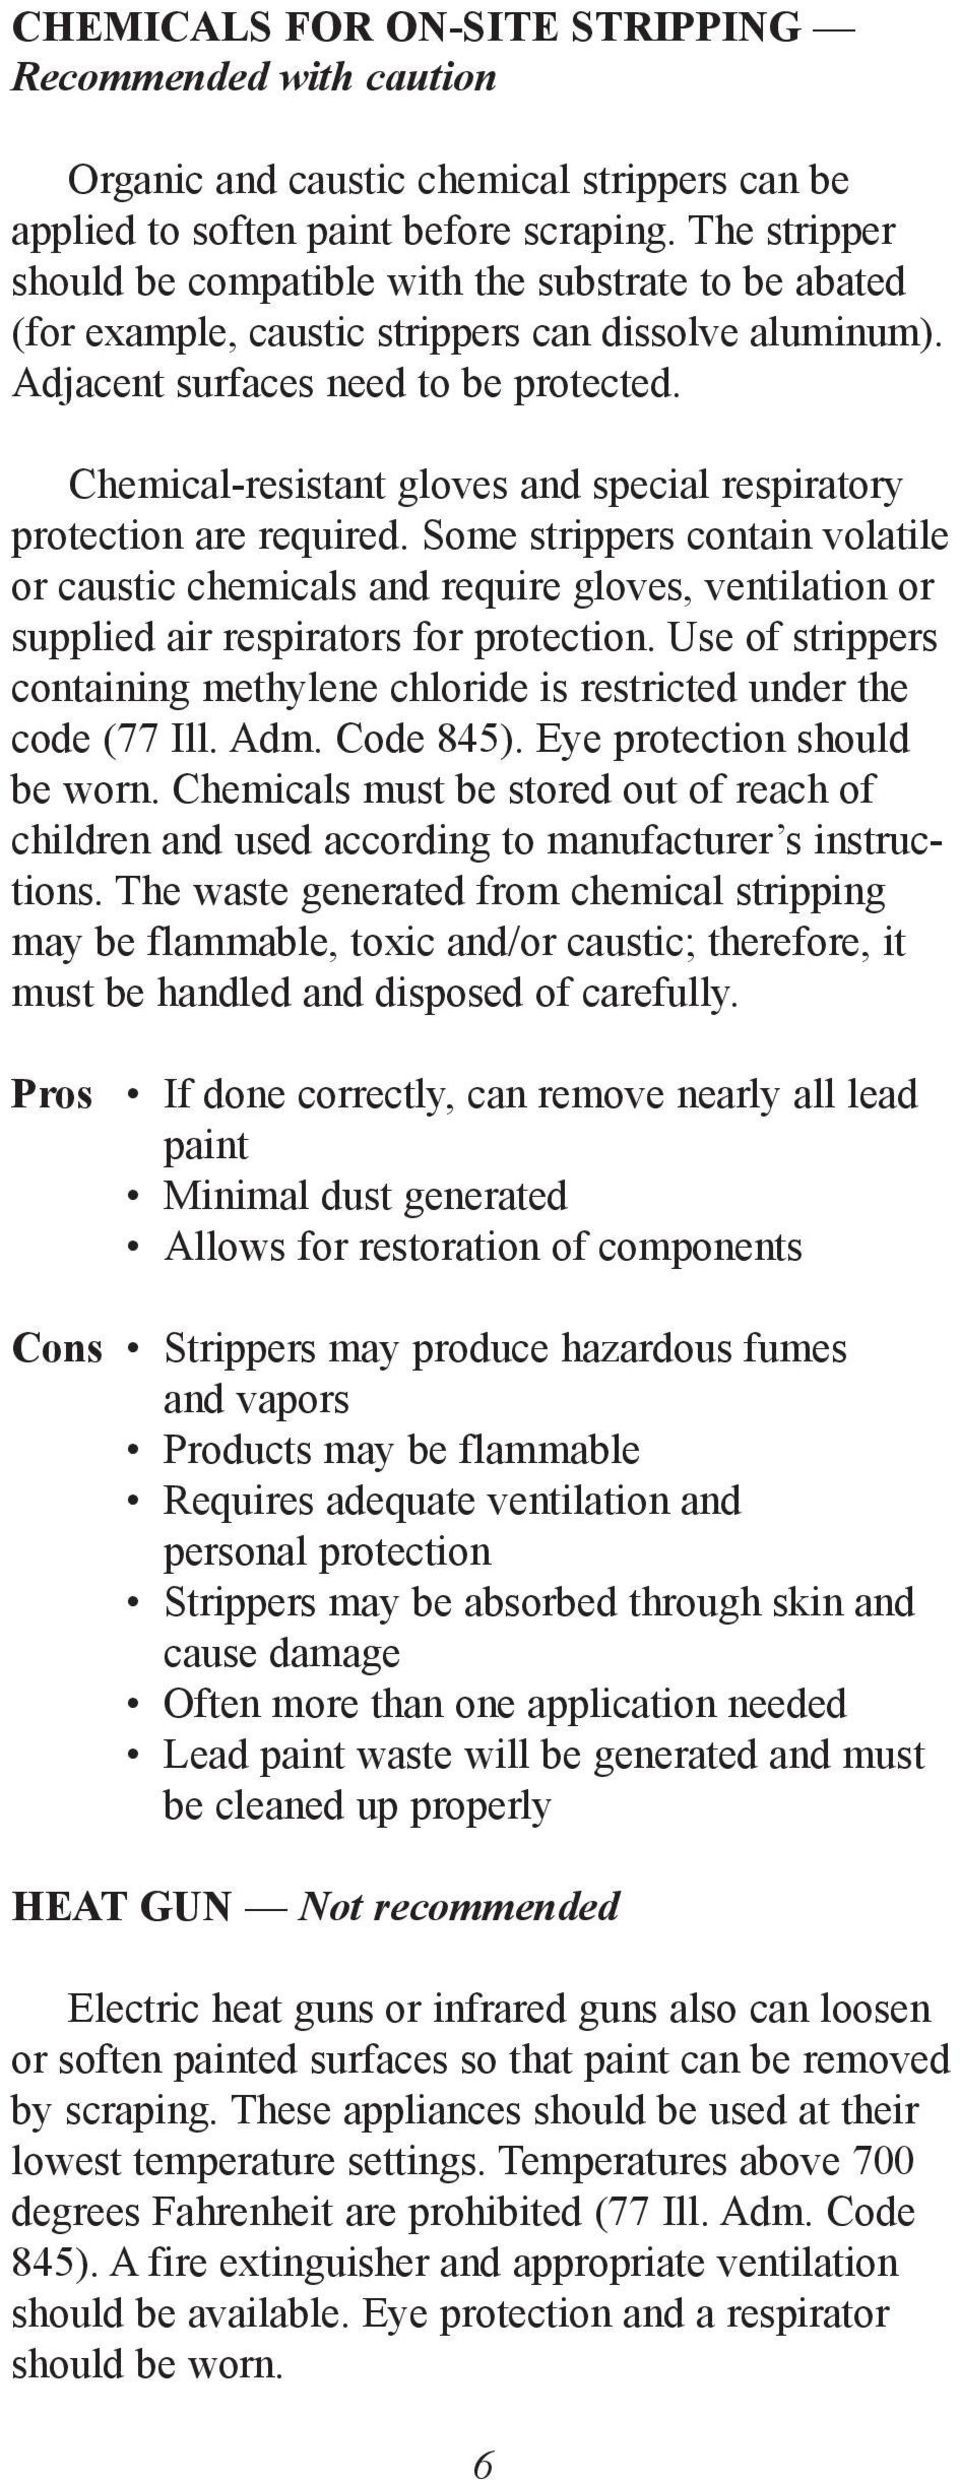 Chemical-resistant gloves and special respiratory protection are required.